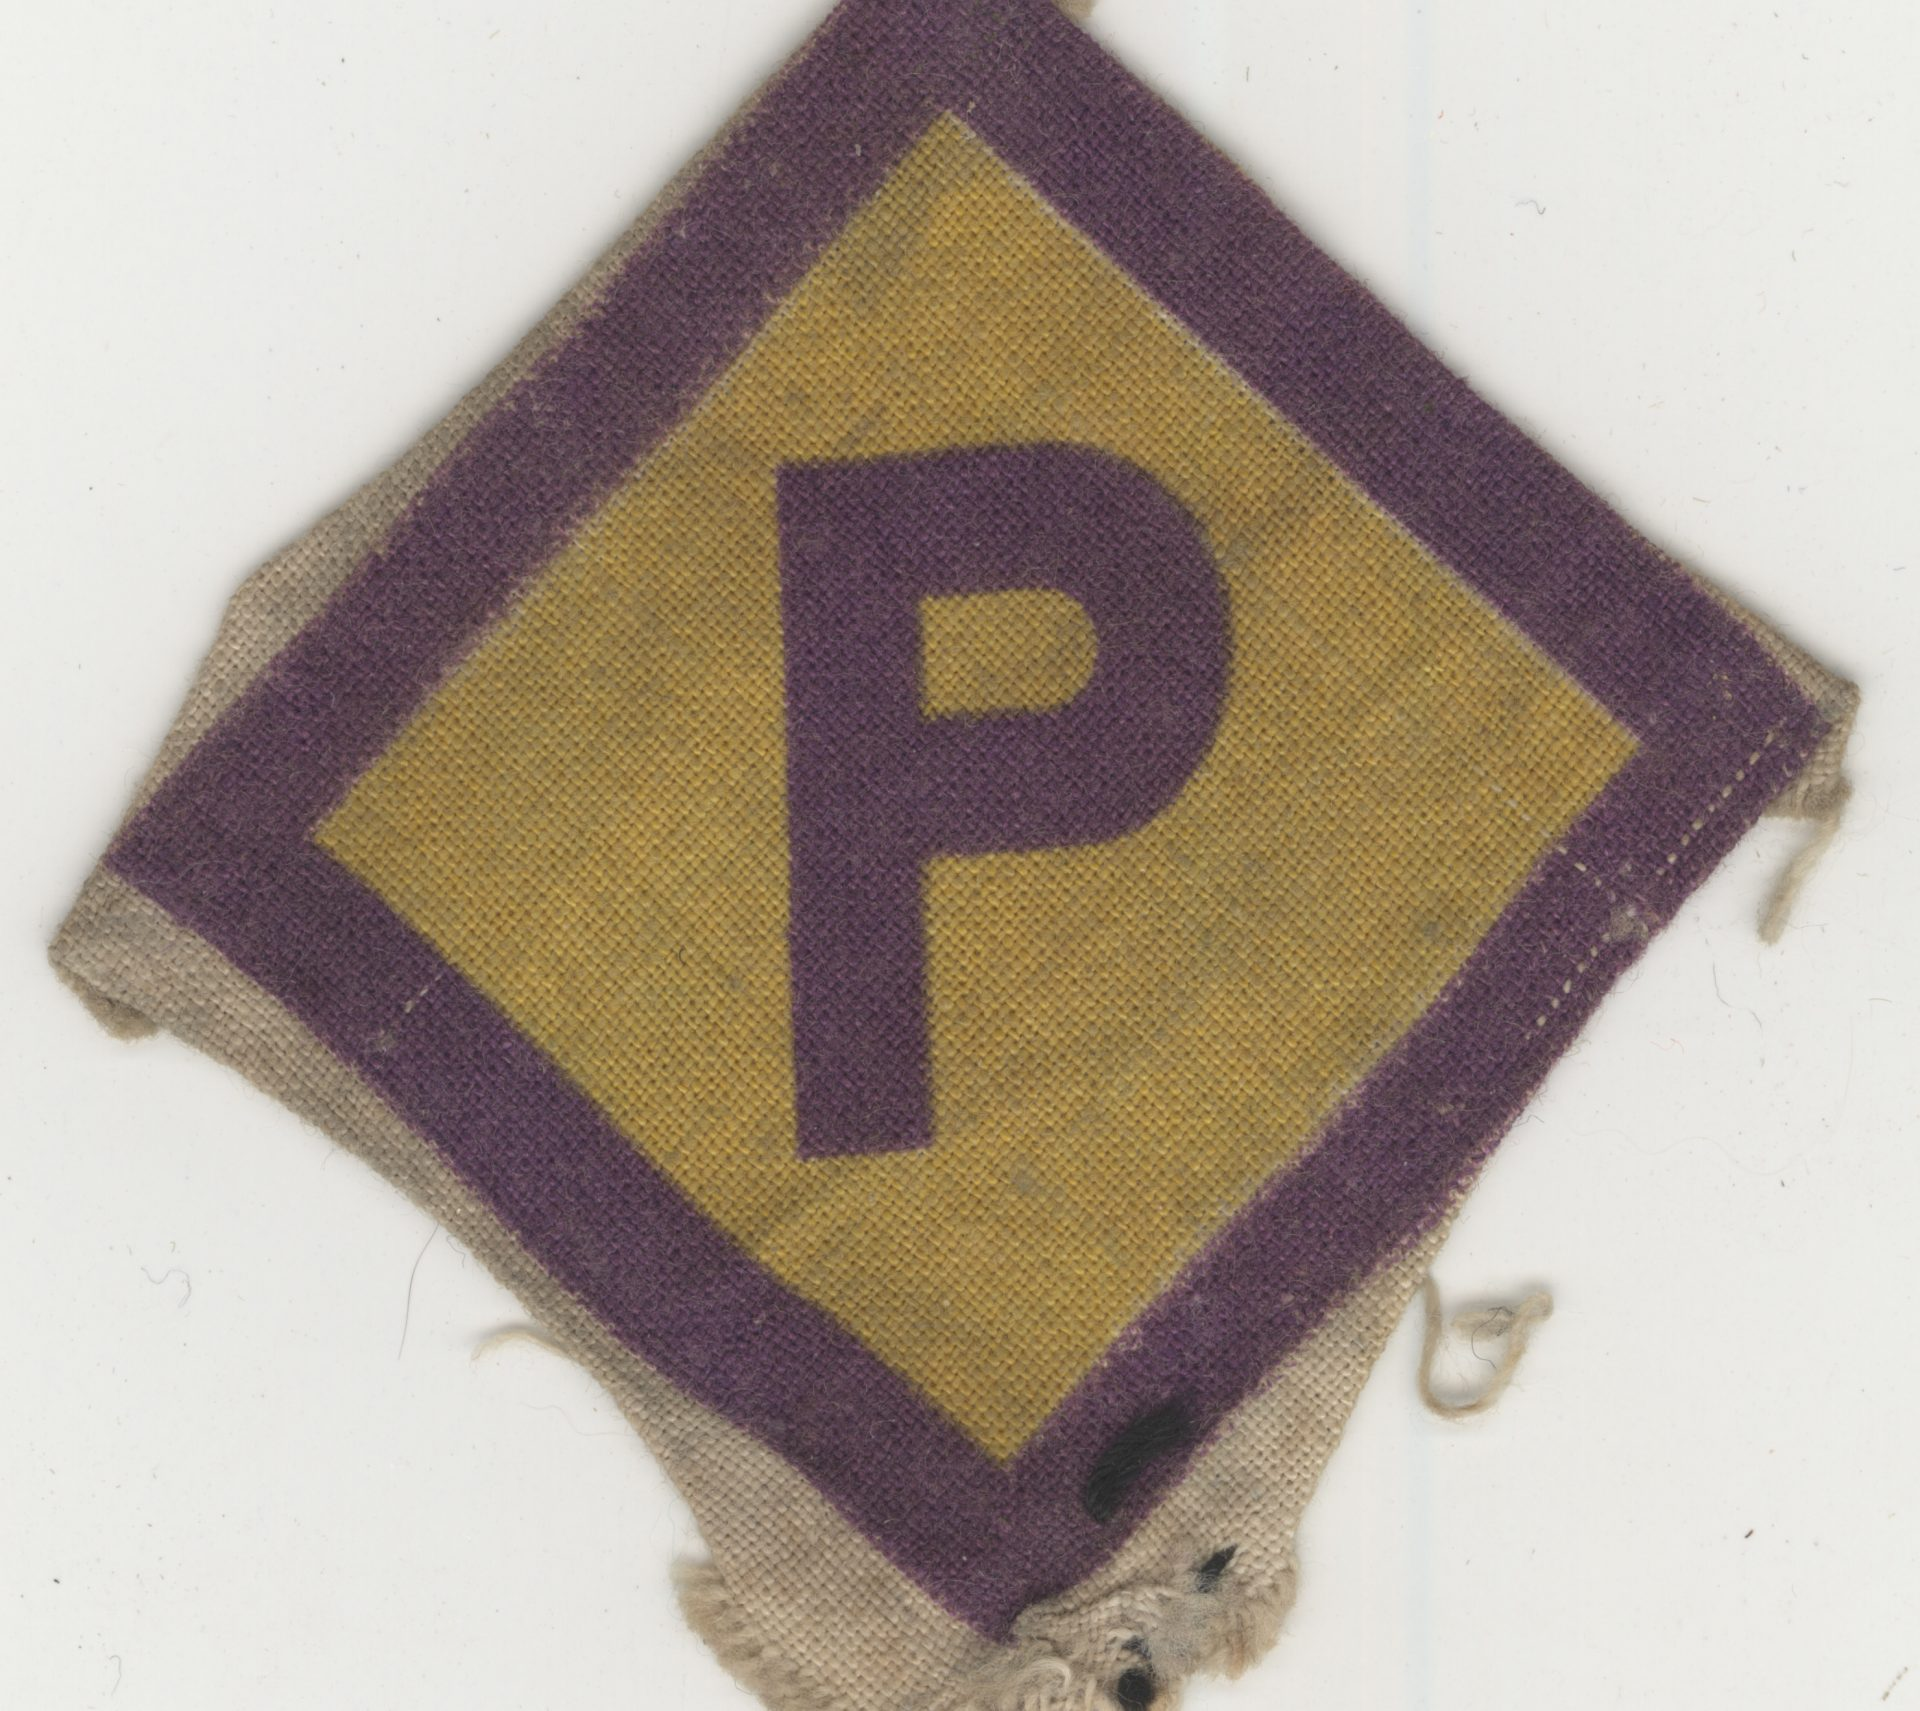 Yellow diamond-shaped badge used to  identify Polish labourers working in Germany during the war. This badge belonged to Aba Beer.